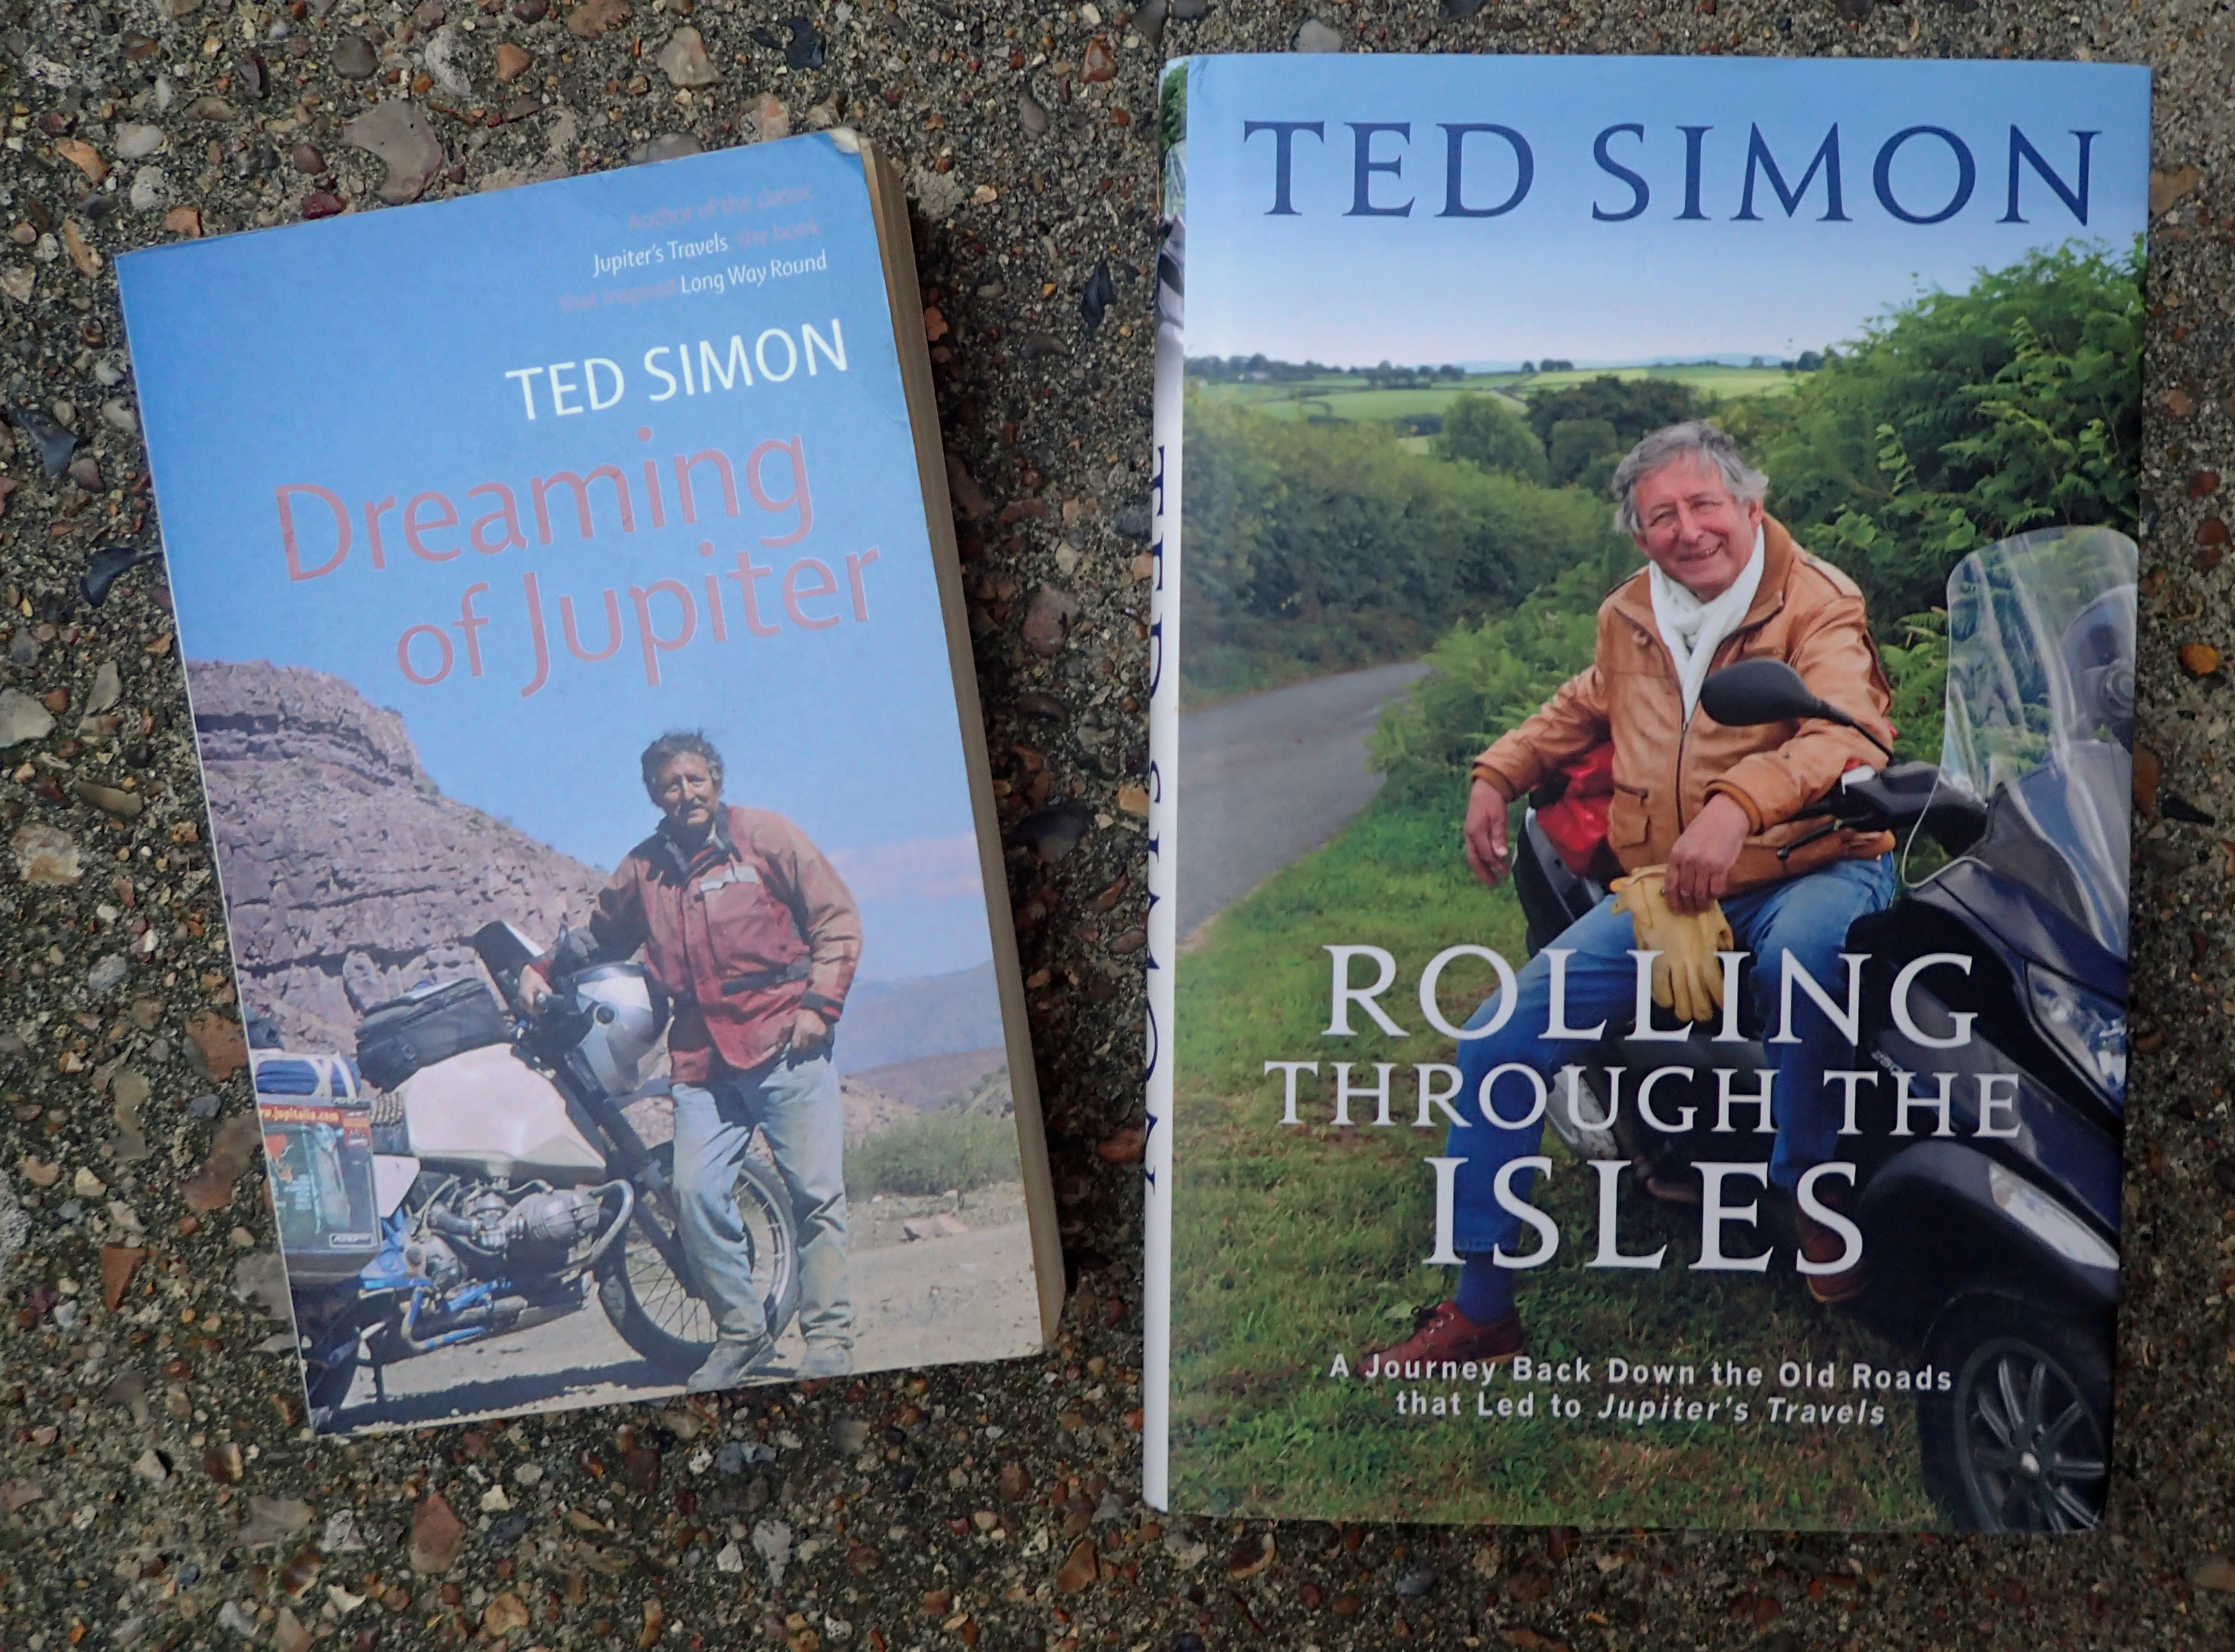 More books by Ted Simon